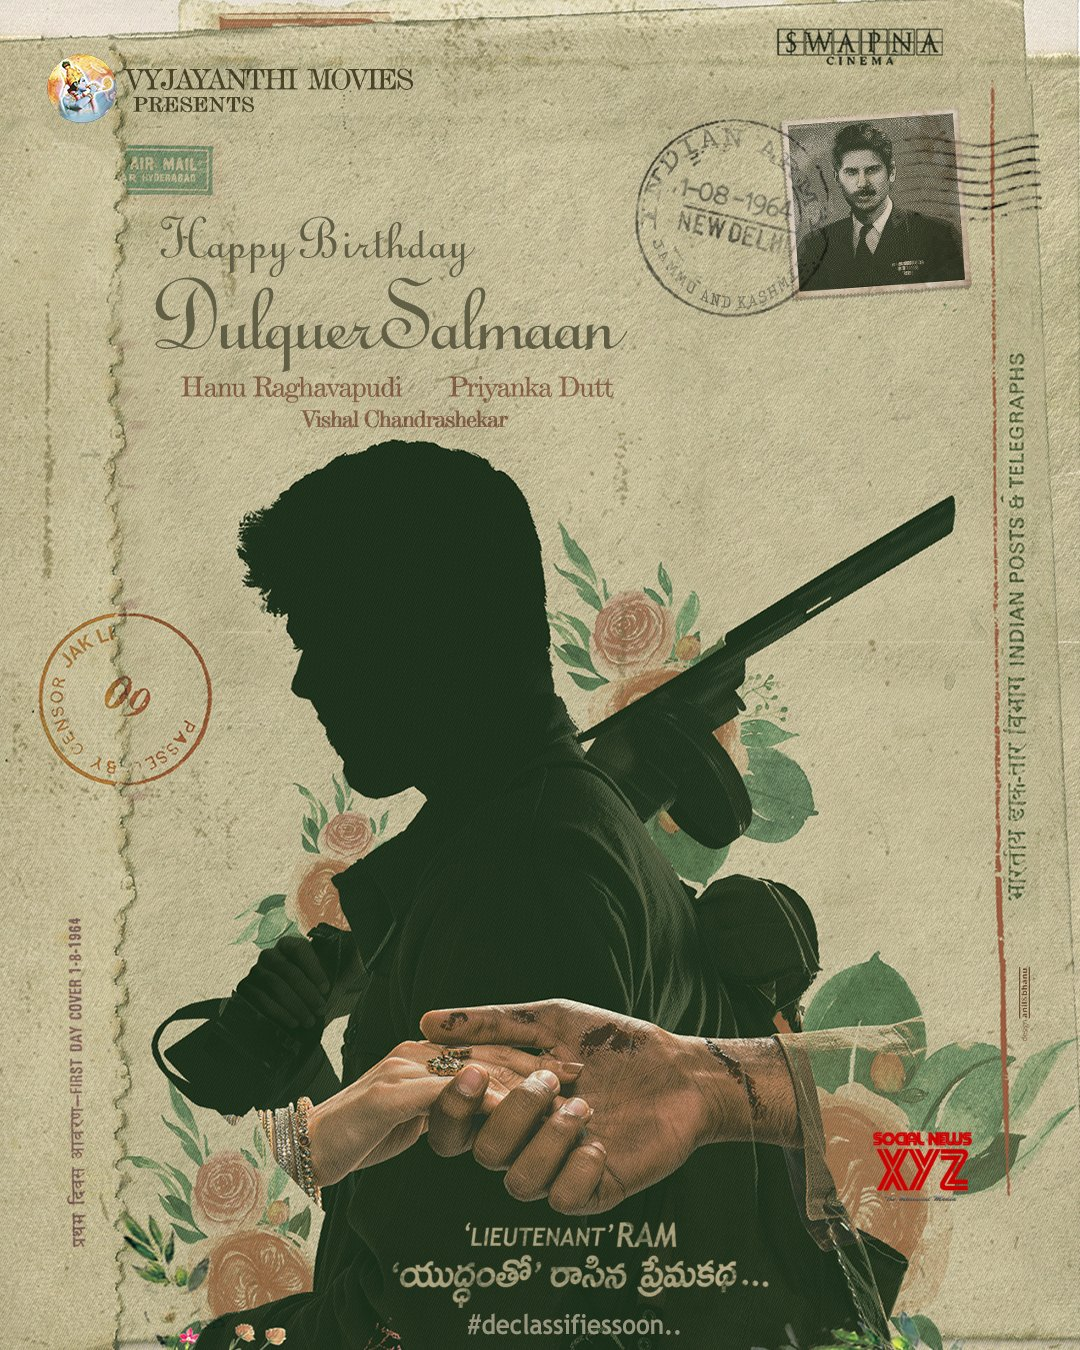 Dulquer Salmaan To Play Lieutenant Ram In Swapna Cinema's Untitled 1964 Period Love Story During War